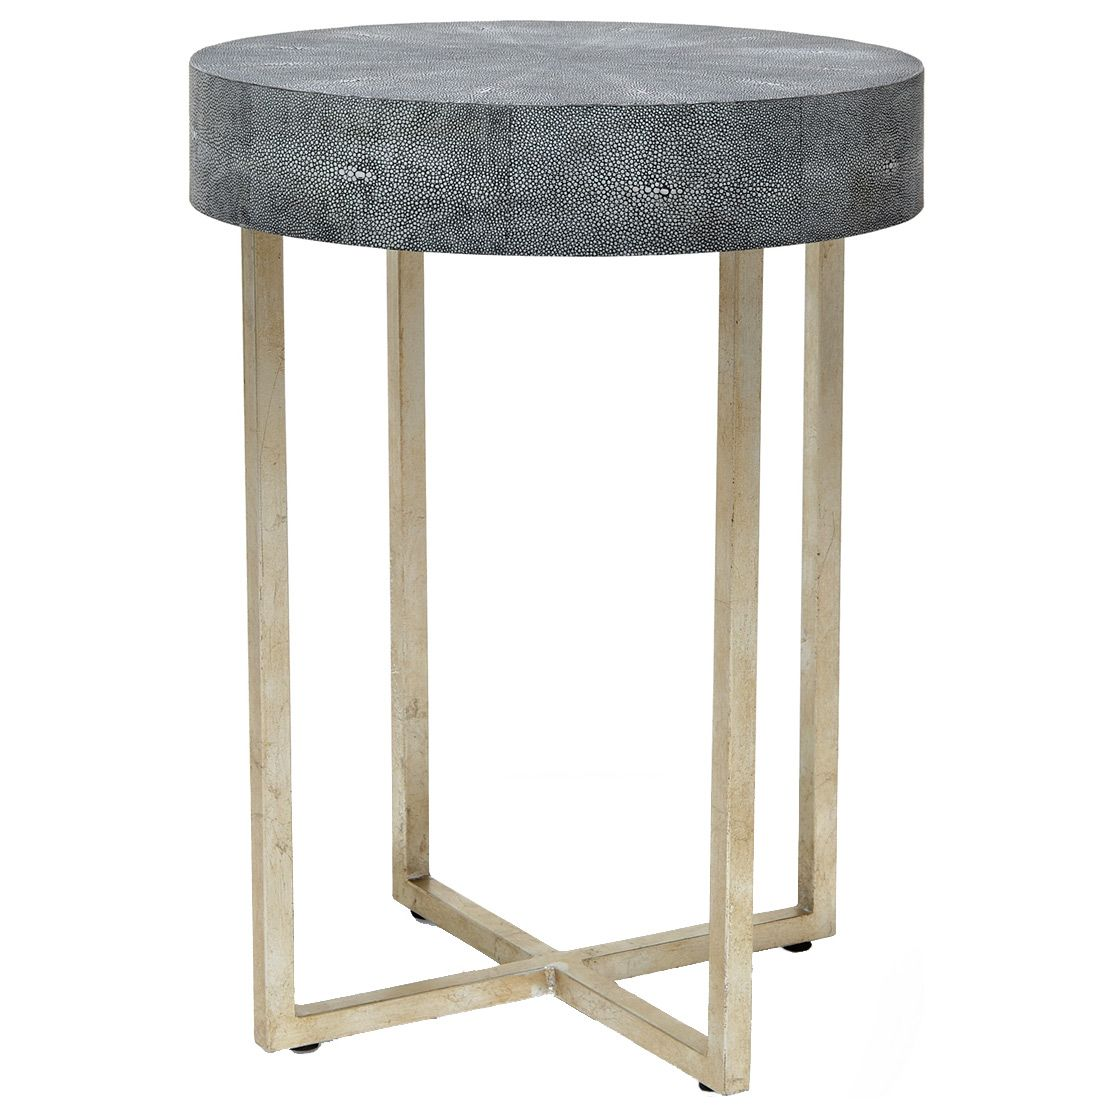 avalon shagreen round side table zinc door zincdoor modern accent fashion fashionweek getthelook lookalikes decor cardboard small white outdoor mirrored decoration pieces for